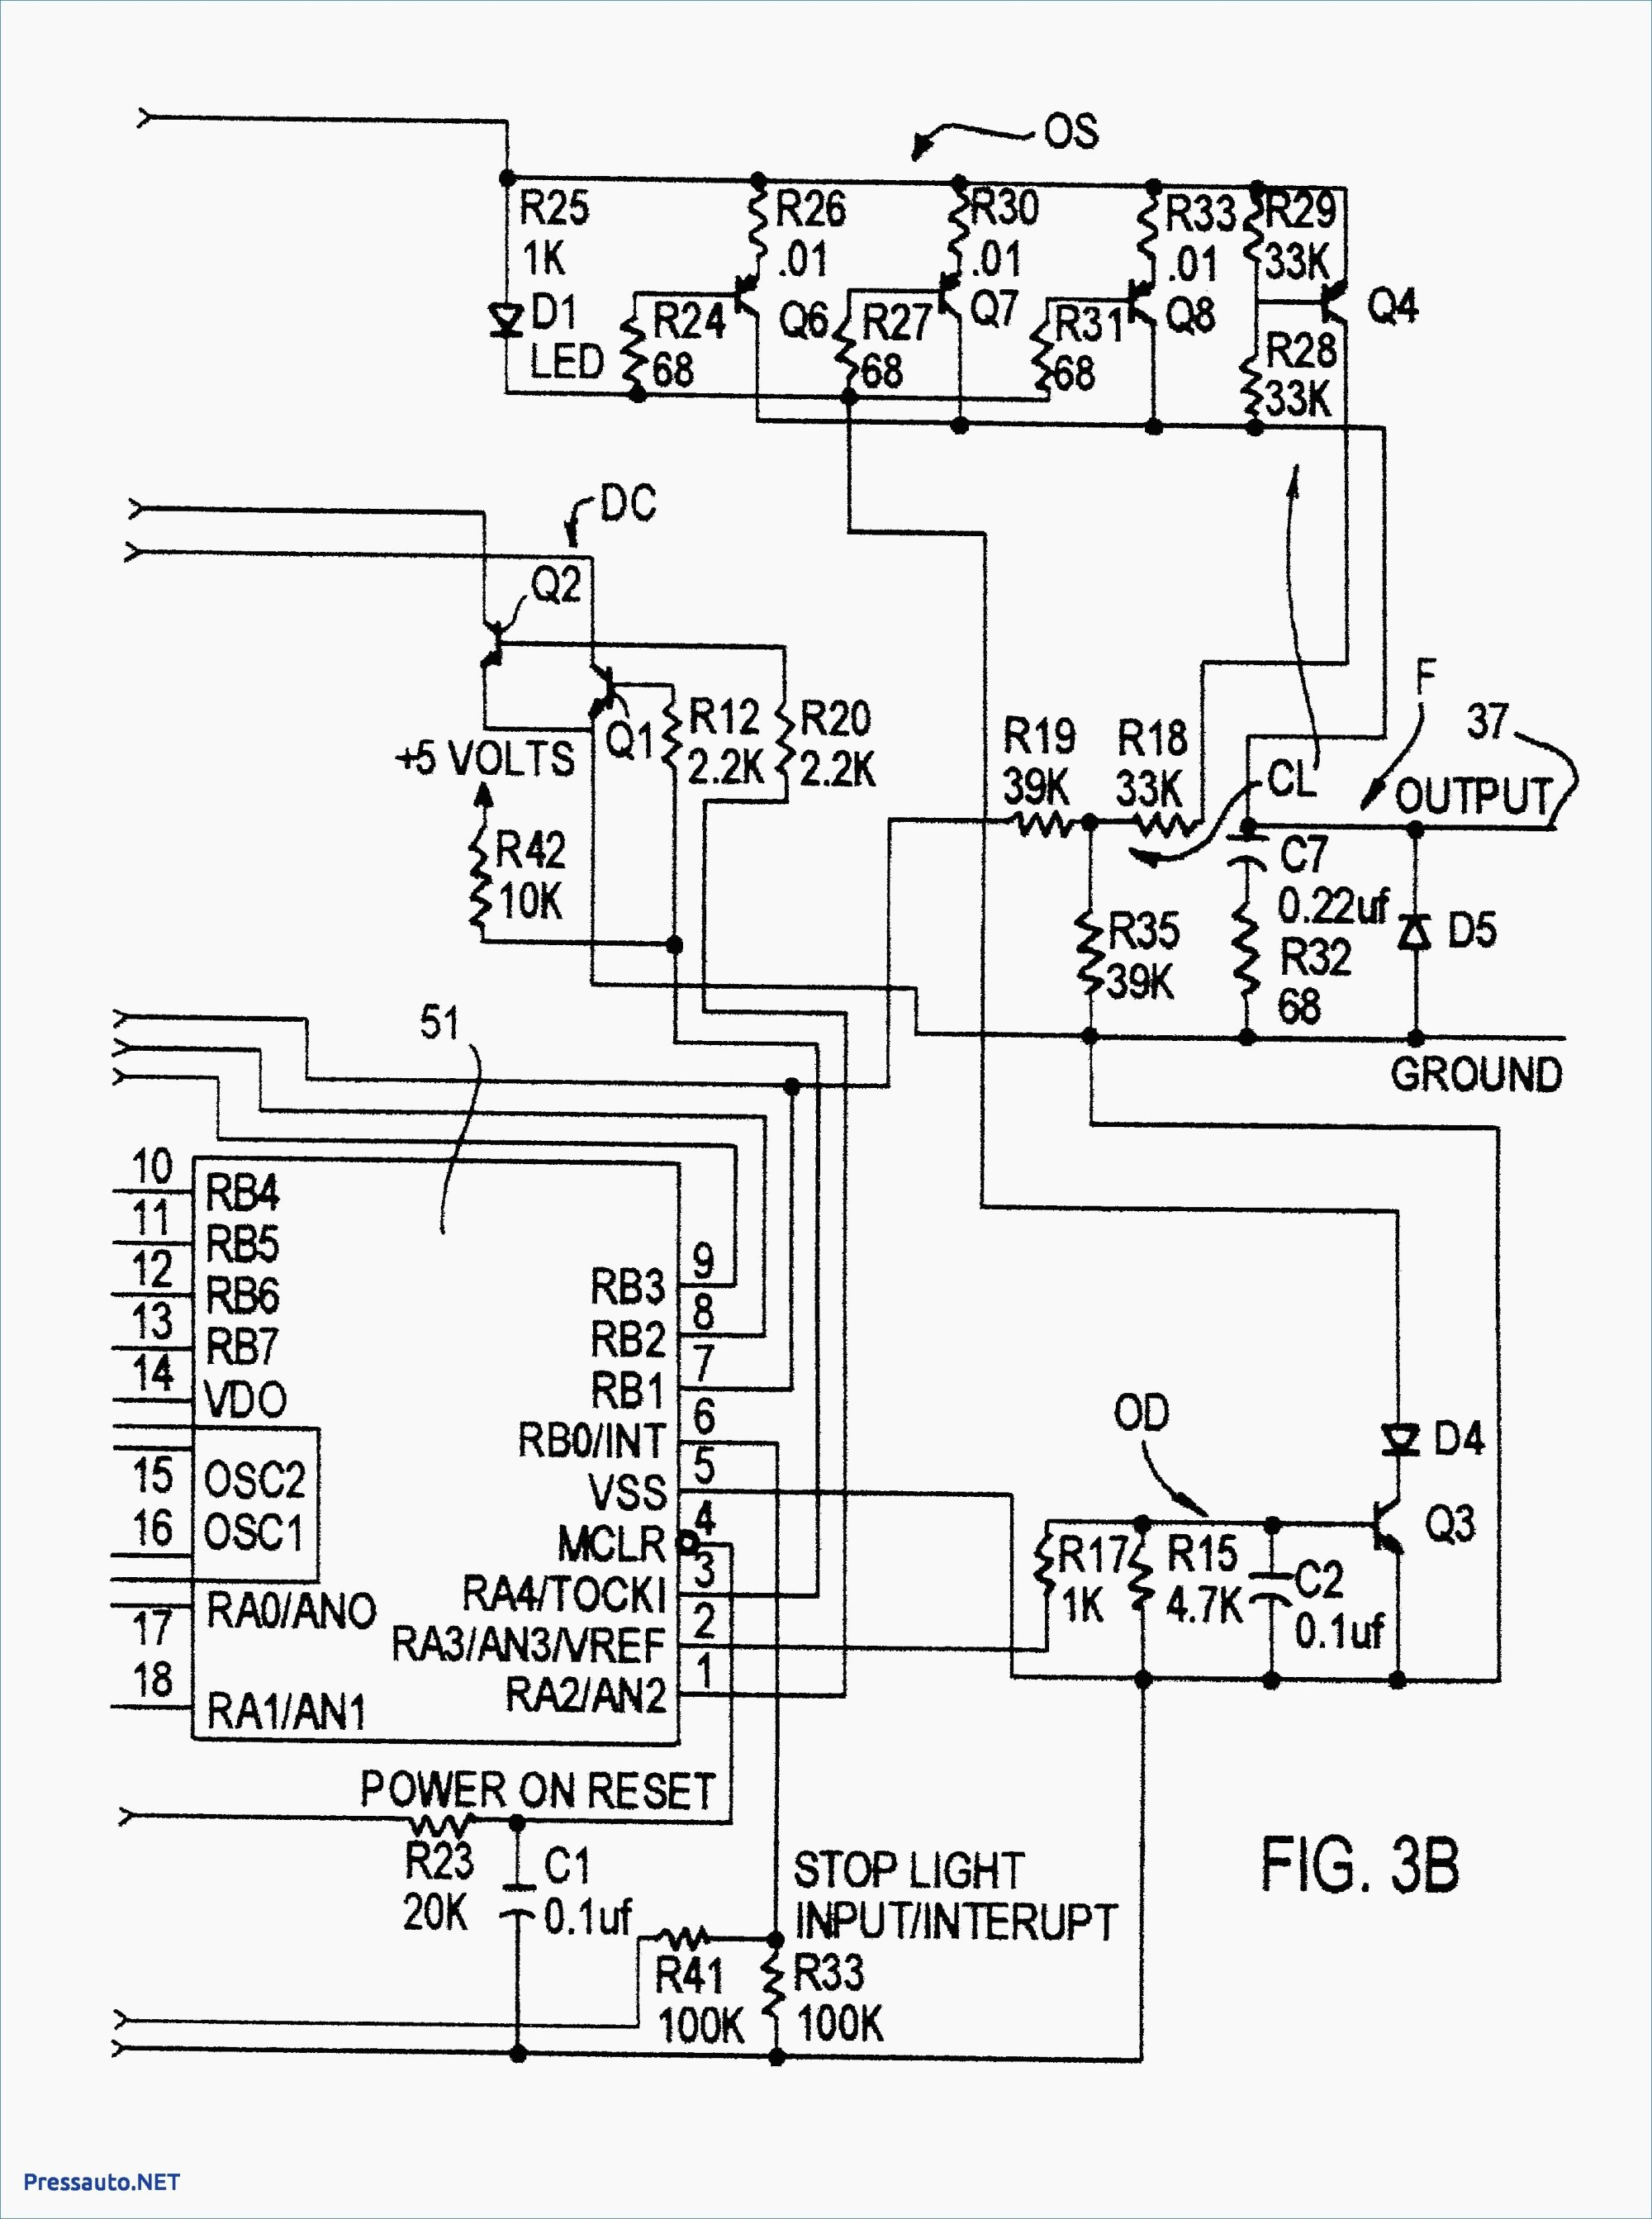 hight resolution of 2001 galant belt diagram www topsimages com rh topsimages com mitsubishi montero engine manual 2001 mitsubishi